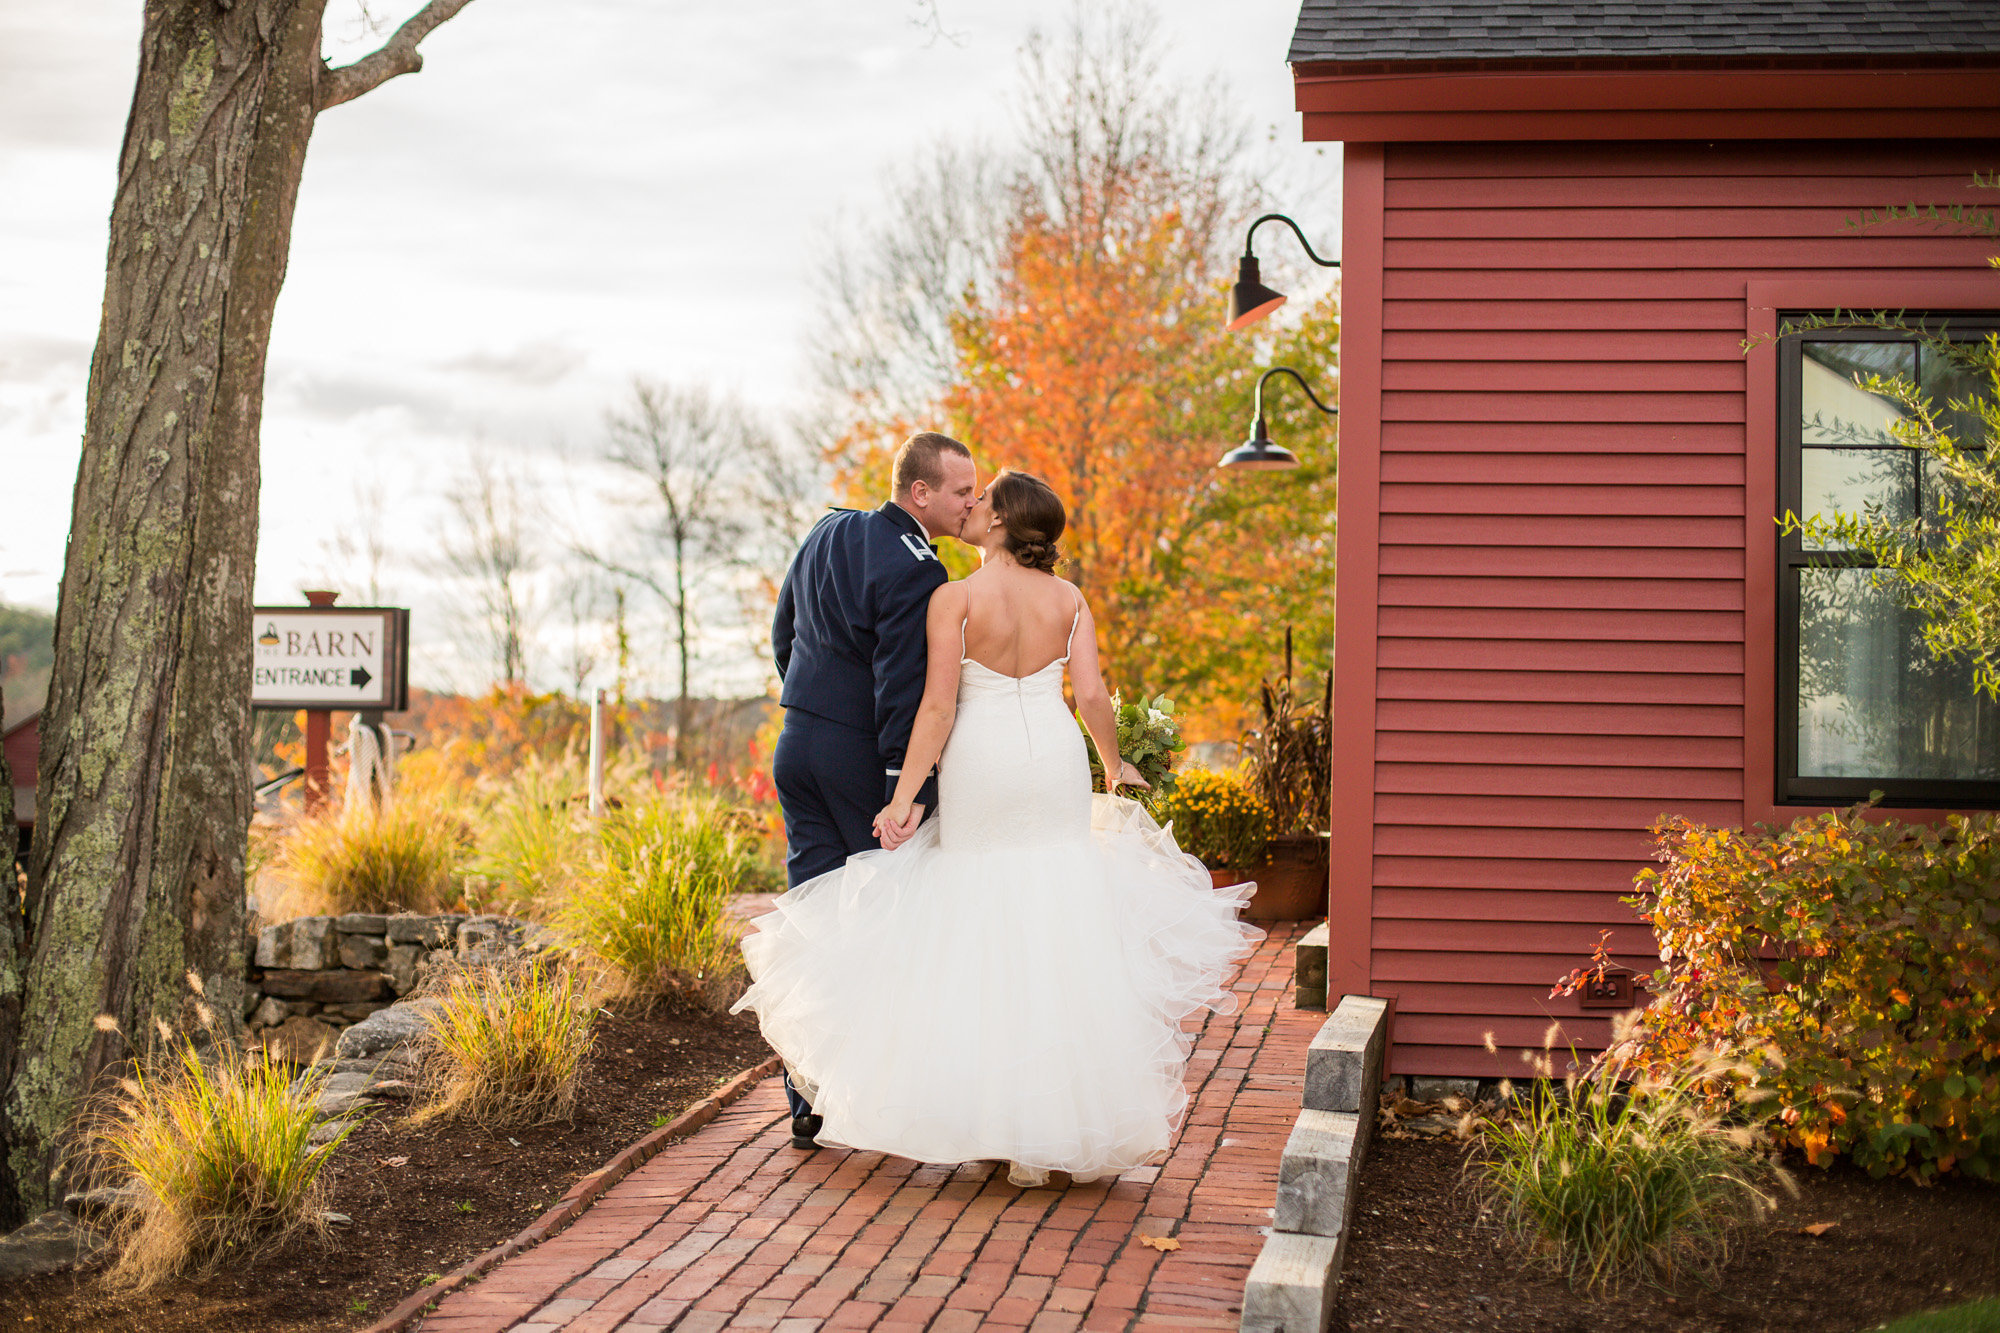 0764-LaurenAndrew-Wedding-lowres-Barn-Wight-Farm